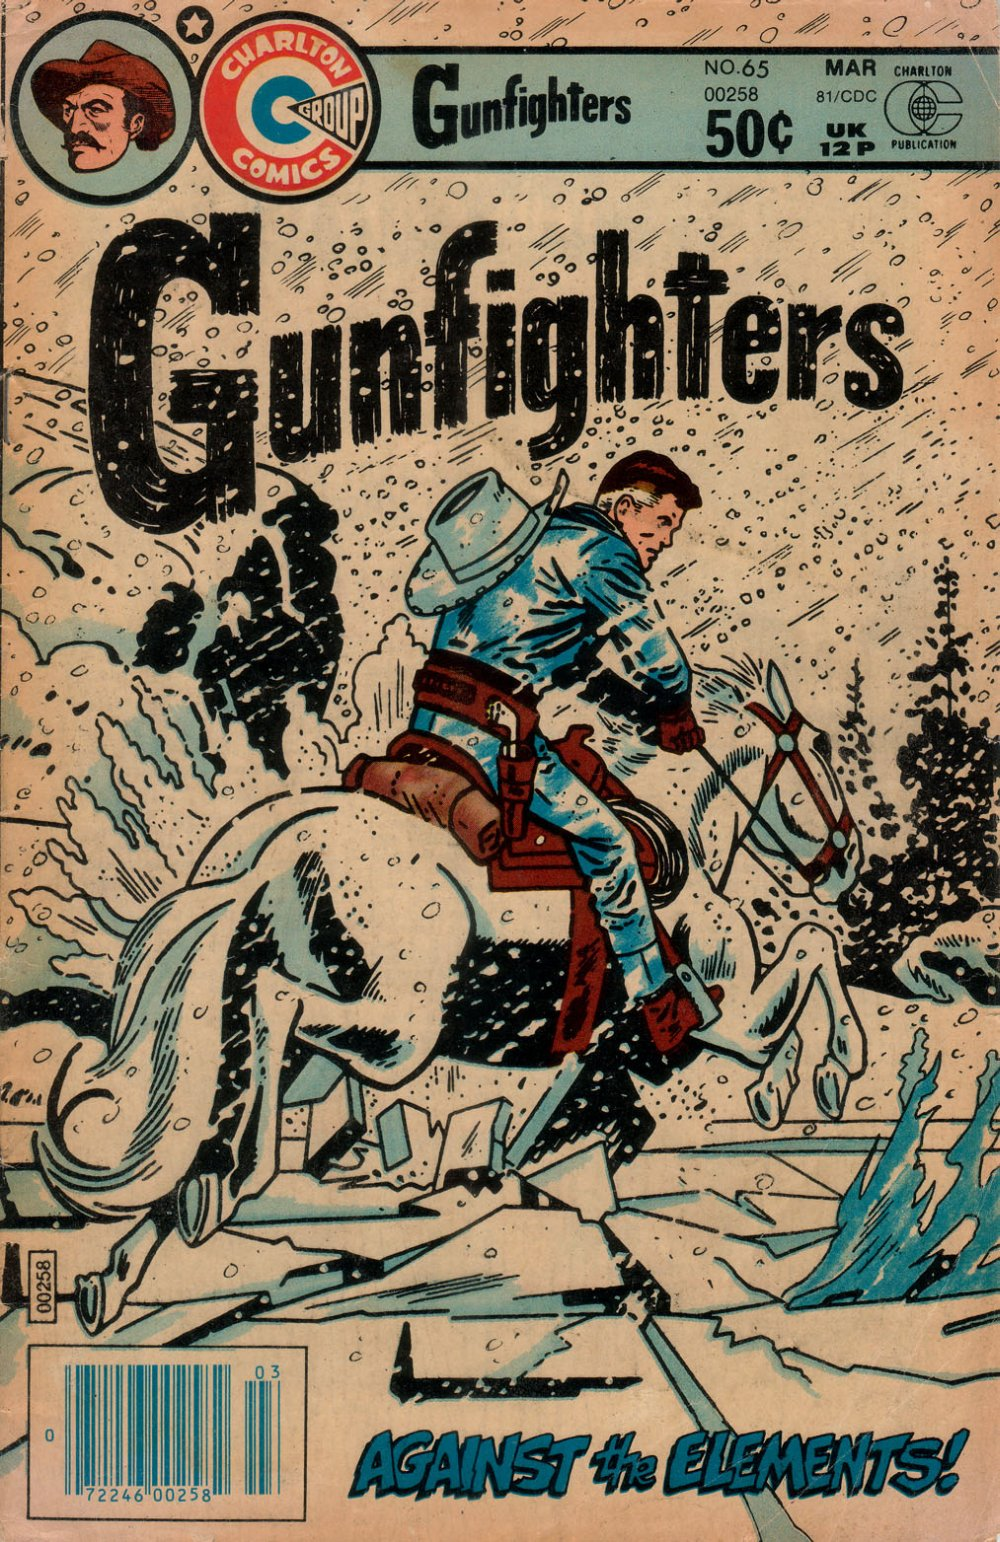 Gun Fighter [Charlton] V1 0065.jpg